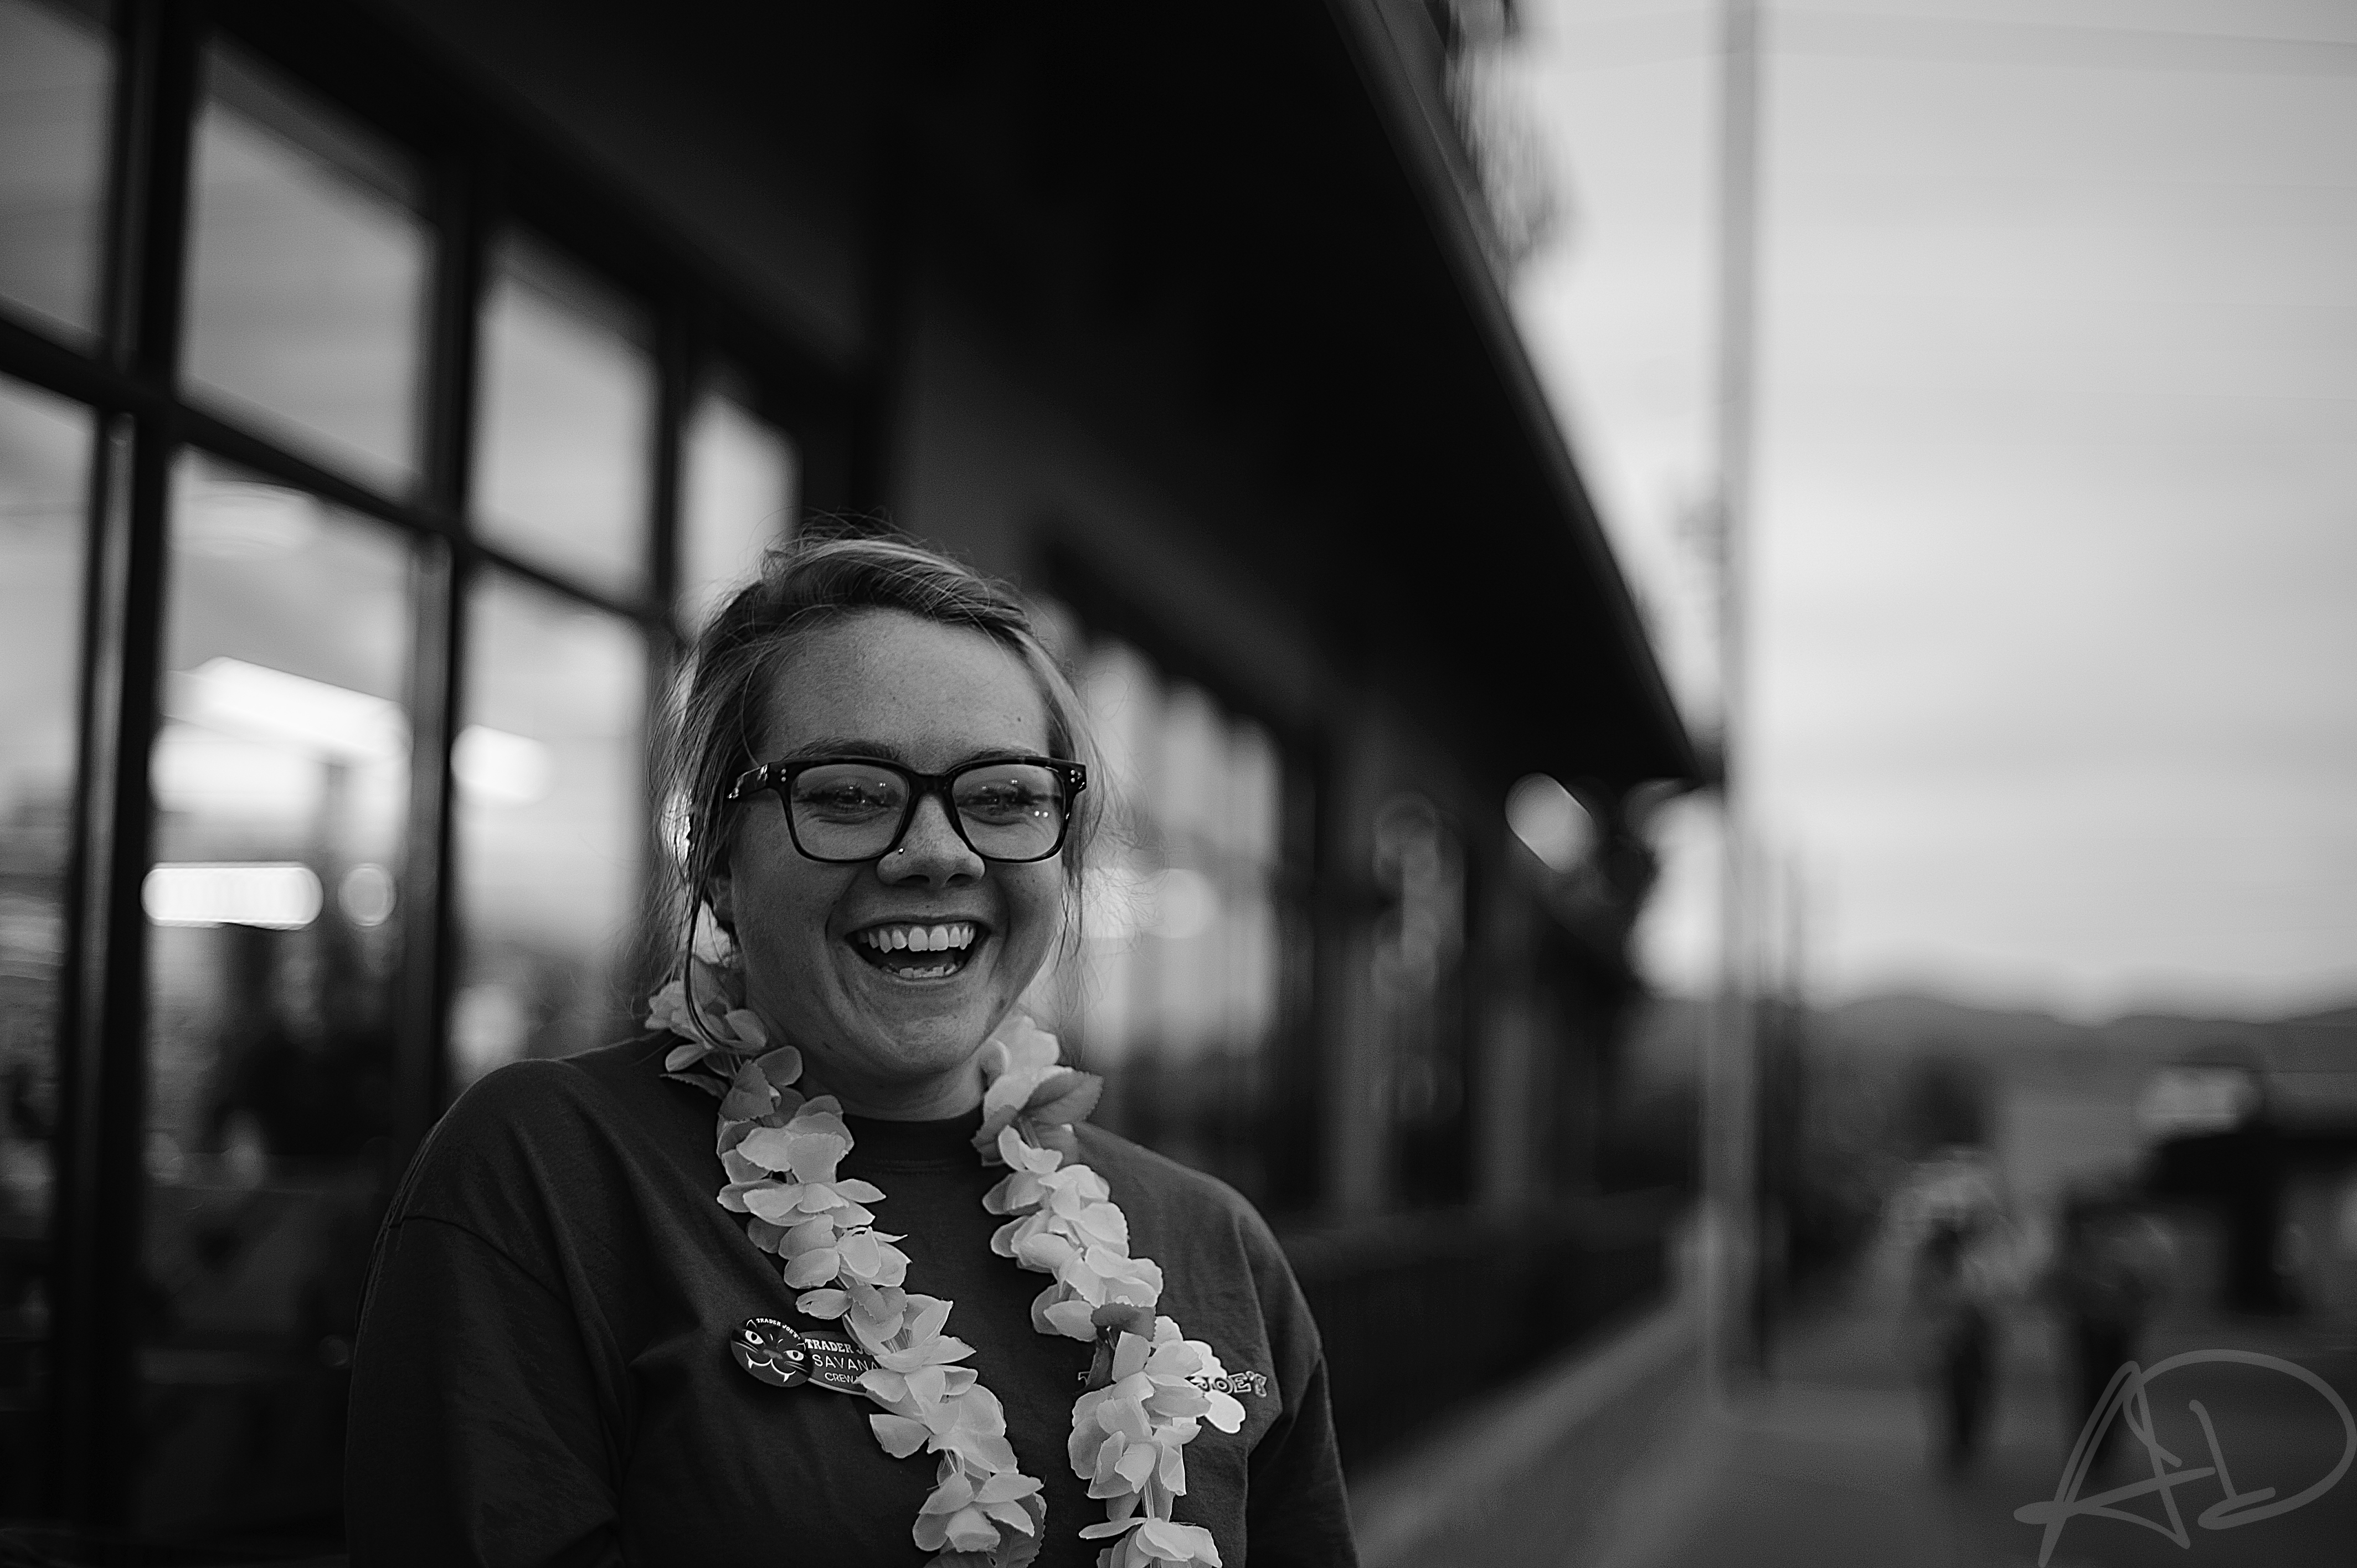 savanah 22 year old what has been your proudest being an ra at western washington university was the most life changing experience